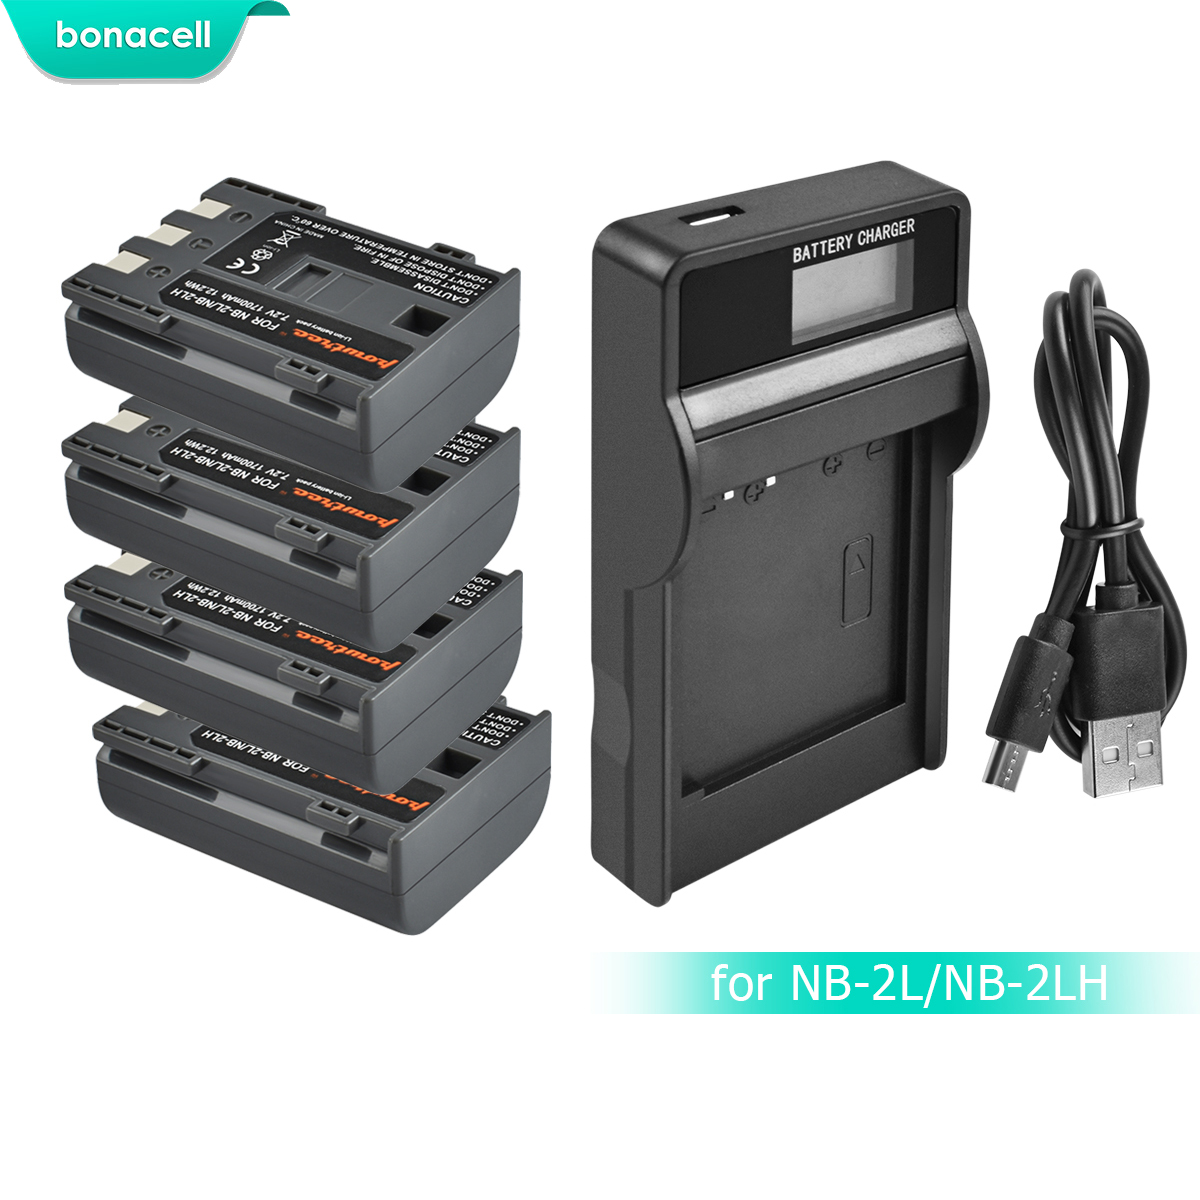 Powtree 1700mAh NB-2L NB2L NB-2LH NB 2LH NB2LH Digital Camera Battery For Canon Rebel XT XTi 350D 400D G9 G7 S80 S70S30 L10 image